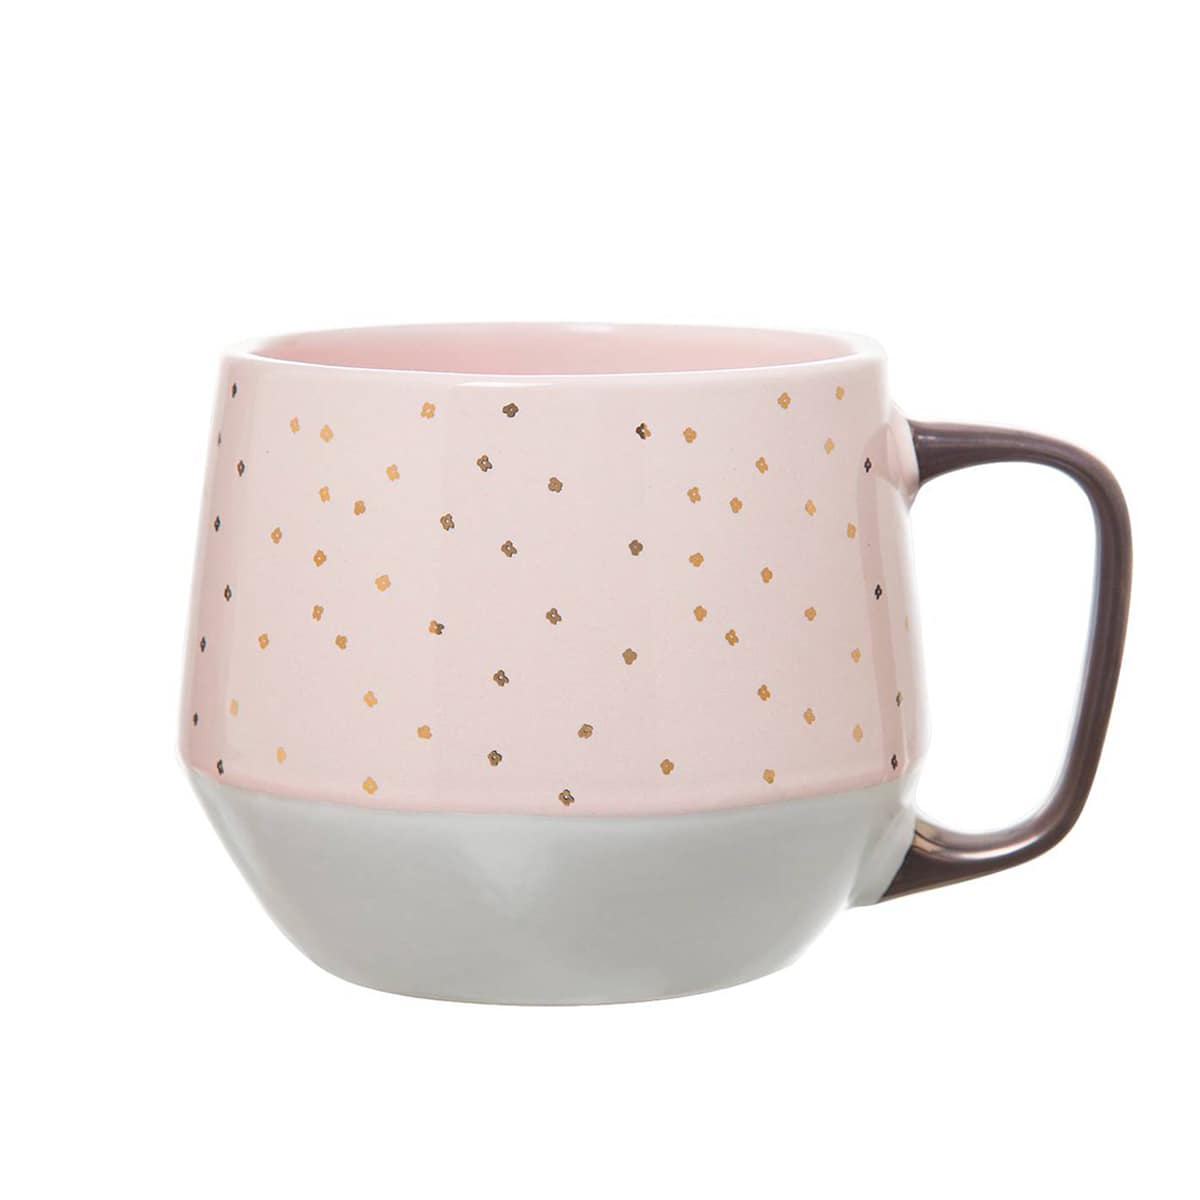 10 Pretty Mugs to Dress Up Your Desk: gallery image 9